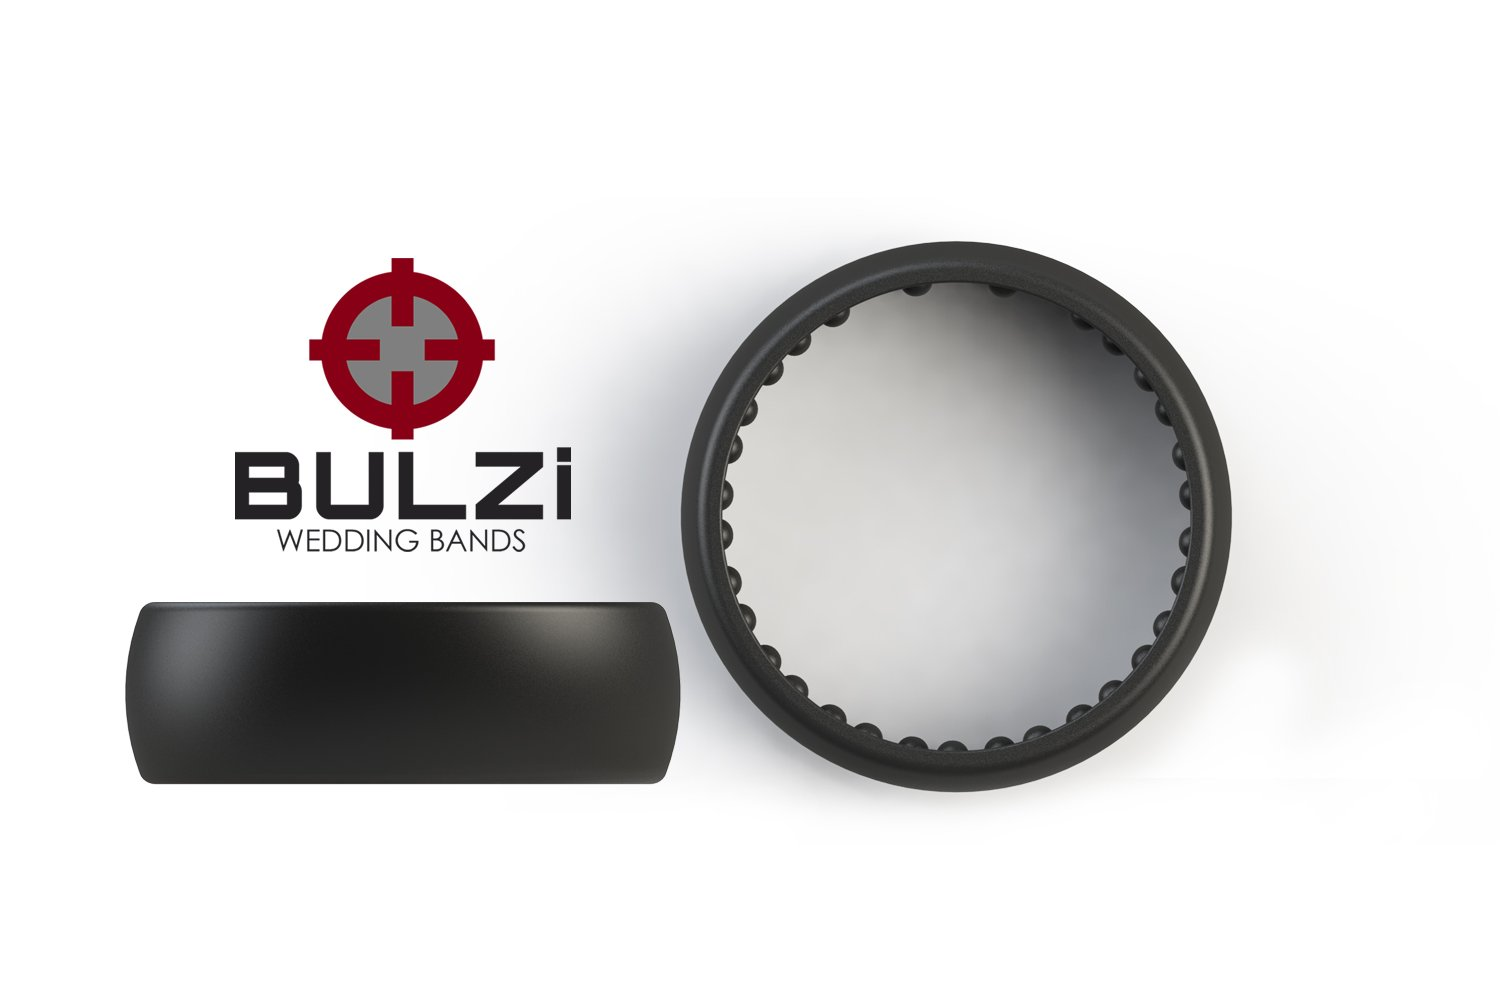 Amazoncom BULZi Massaging Comfort Fit Silicone Wedding Ring